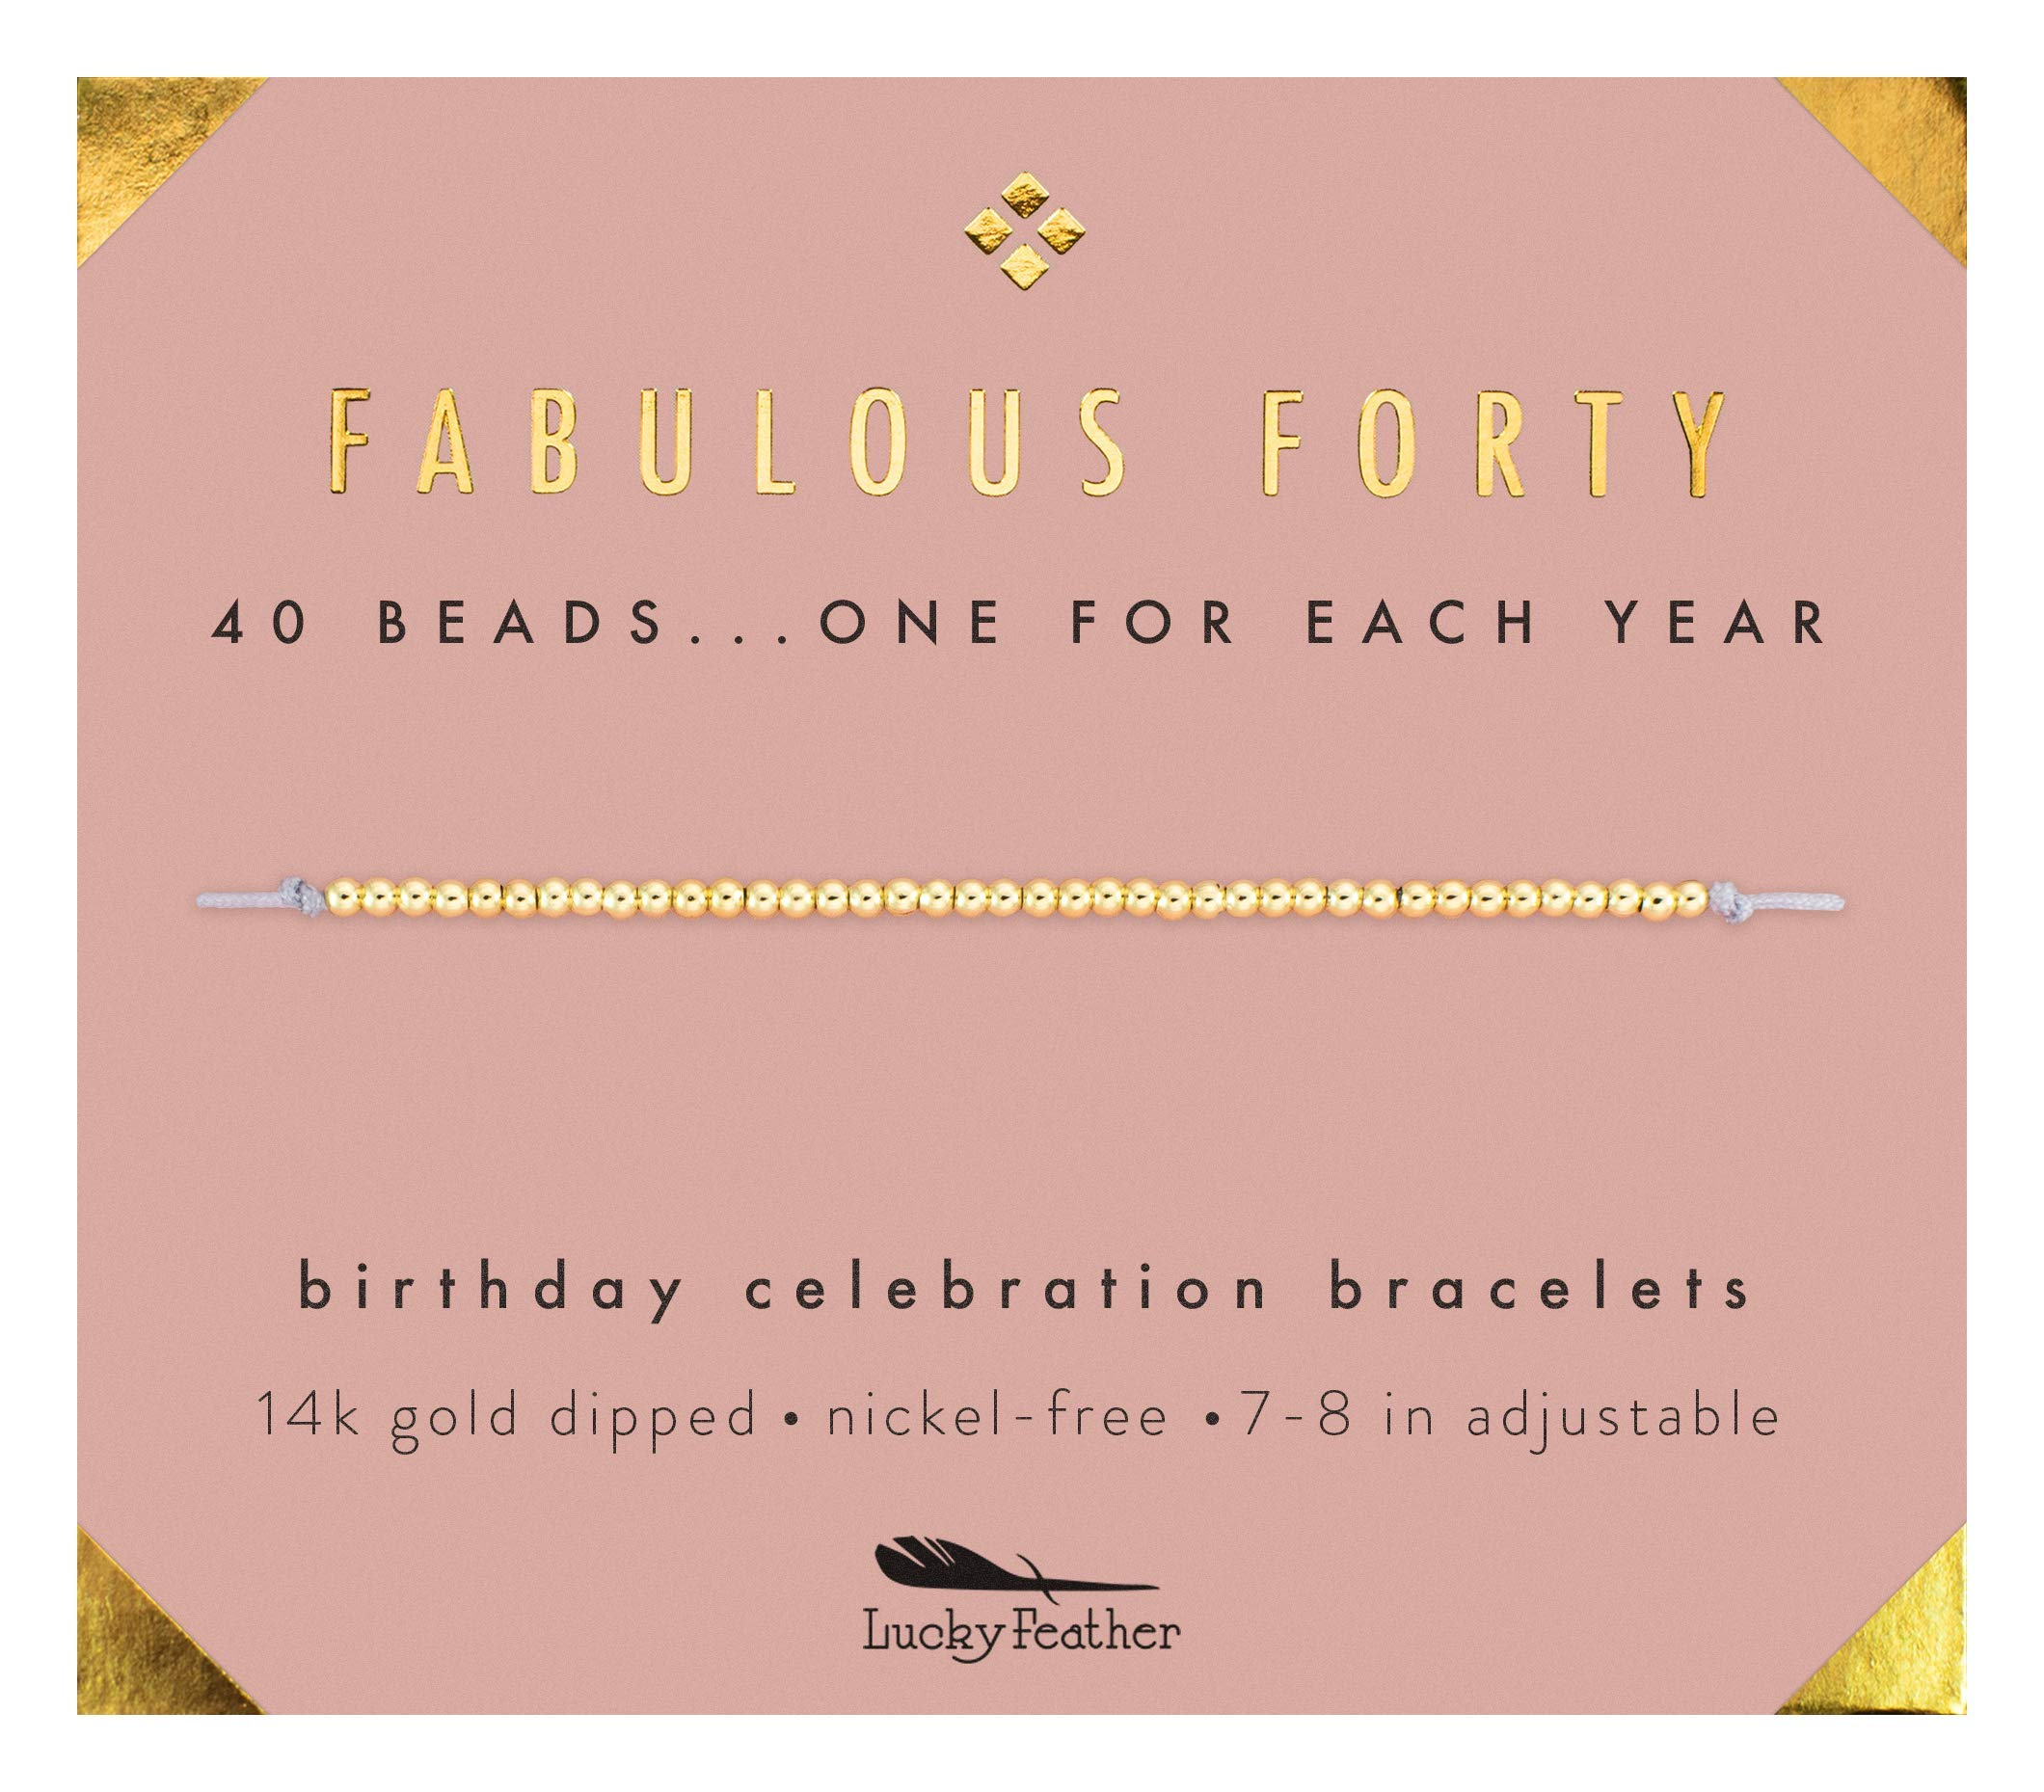 Lucky Feather 40th Birthday Gifts for Women, 14K Gold Dipped Beads Bracelet on Adjustable Cord - Perfect 40th Birthday Gift Ideas for Her by Lucky Feather